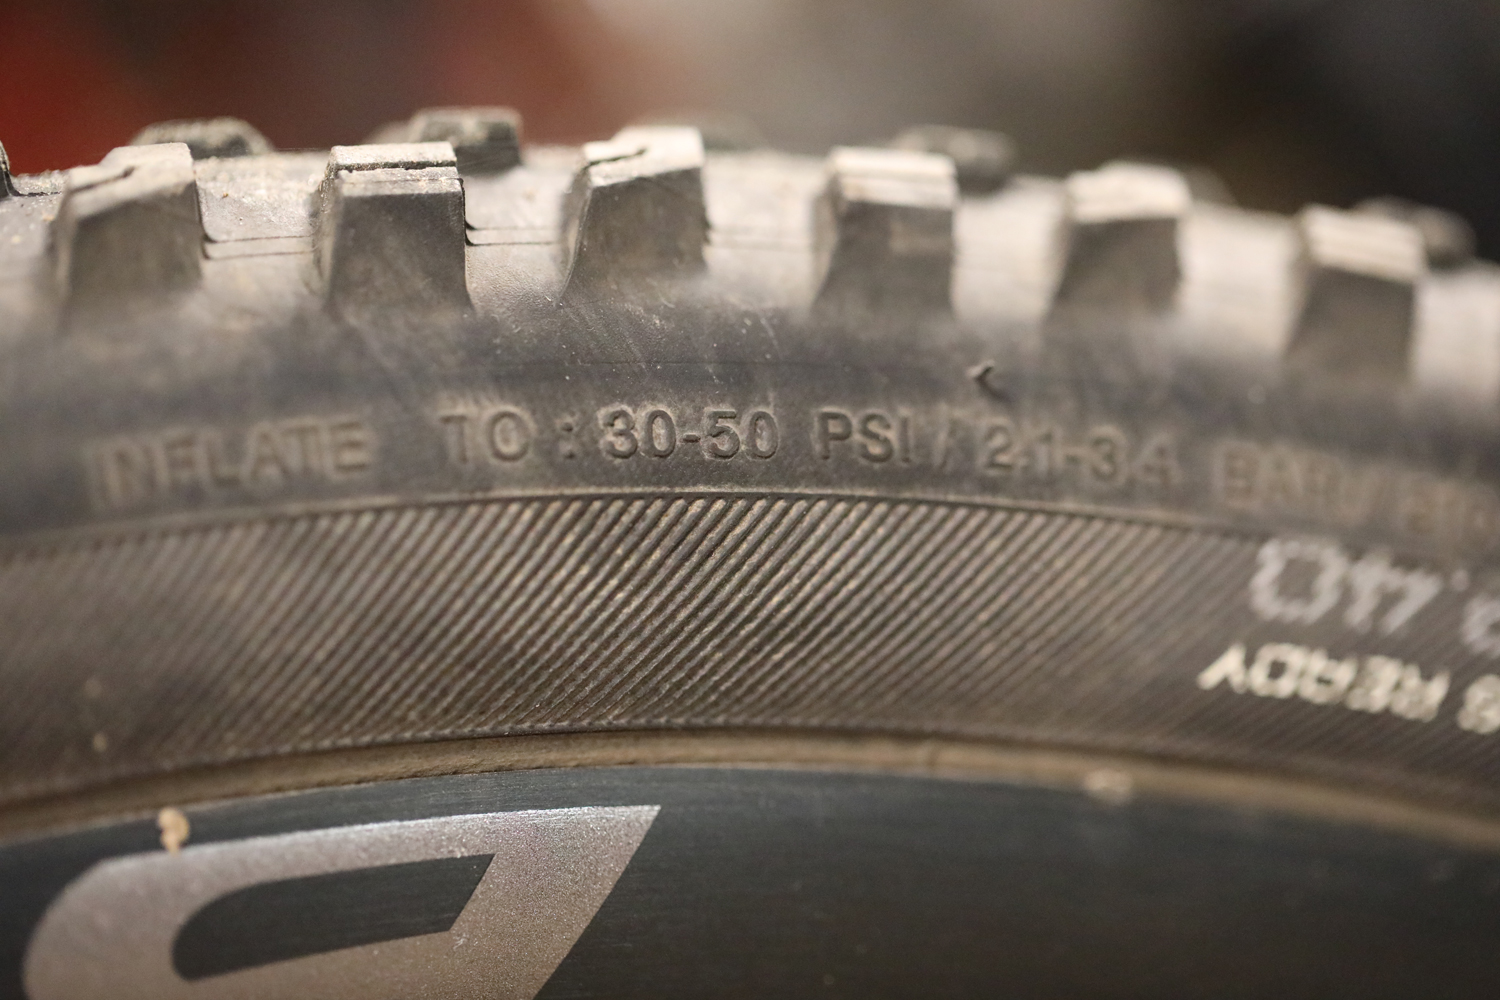 For this tire, the acceptable pressure range is 30-50 psi. It's helpful to have a pump with a dial at home.